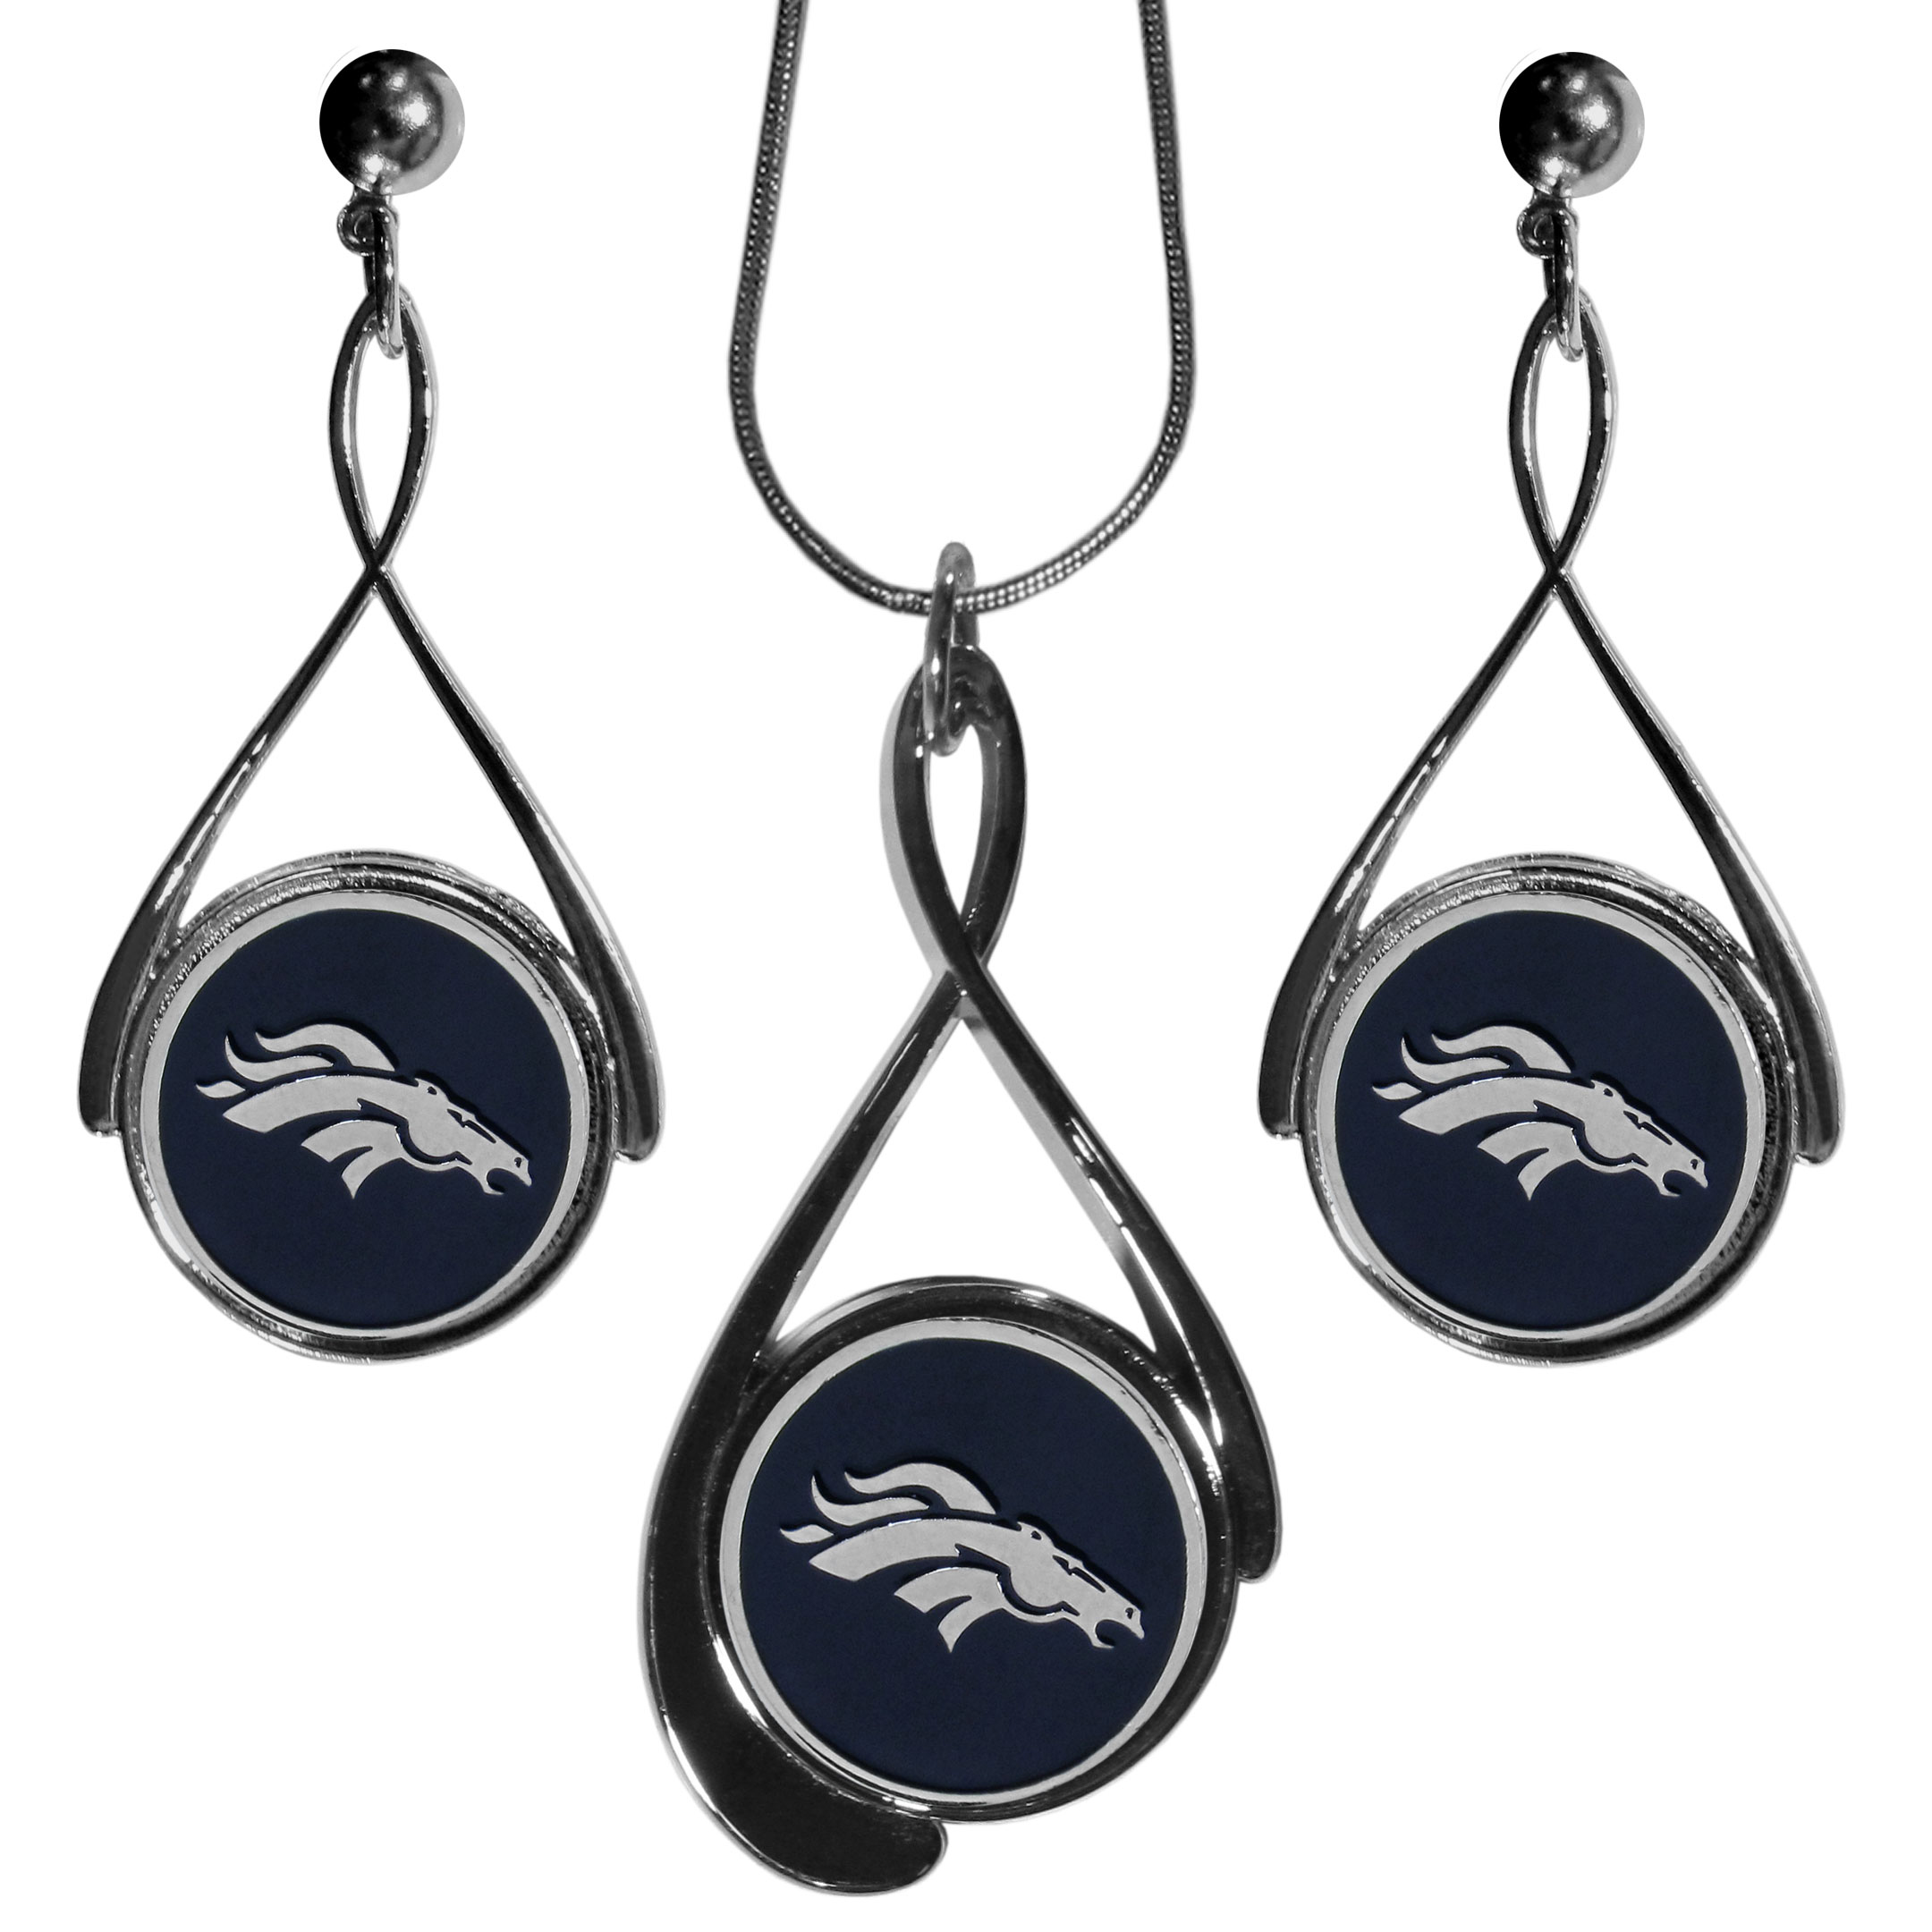 Denver Broncos Tear Drop Jewelry Set - Our Denver Broncos tear drop earrings and necklace set is a sporty twist on the classic tear drop style. The high polish dangle earrings feature the team logo in raised metal against the primary team color inset into the 2 inch tear drop setting paired with a beautiful matching necklace with a 18 inch snake chain with 2 inch extendor. The earrings have hypoallergenic stud posts.